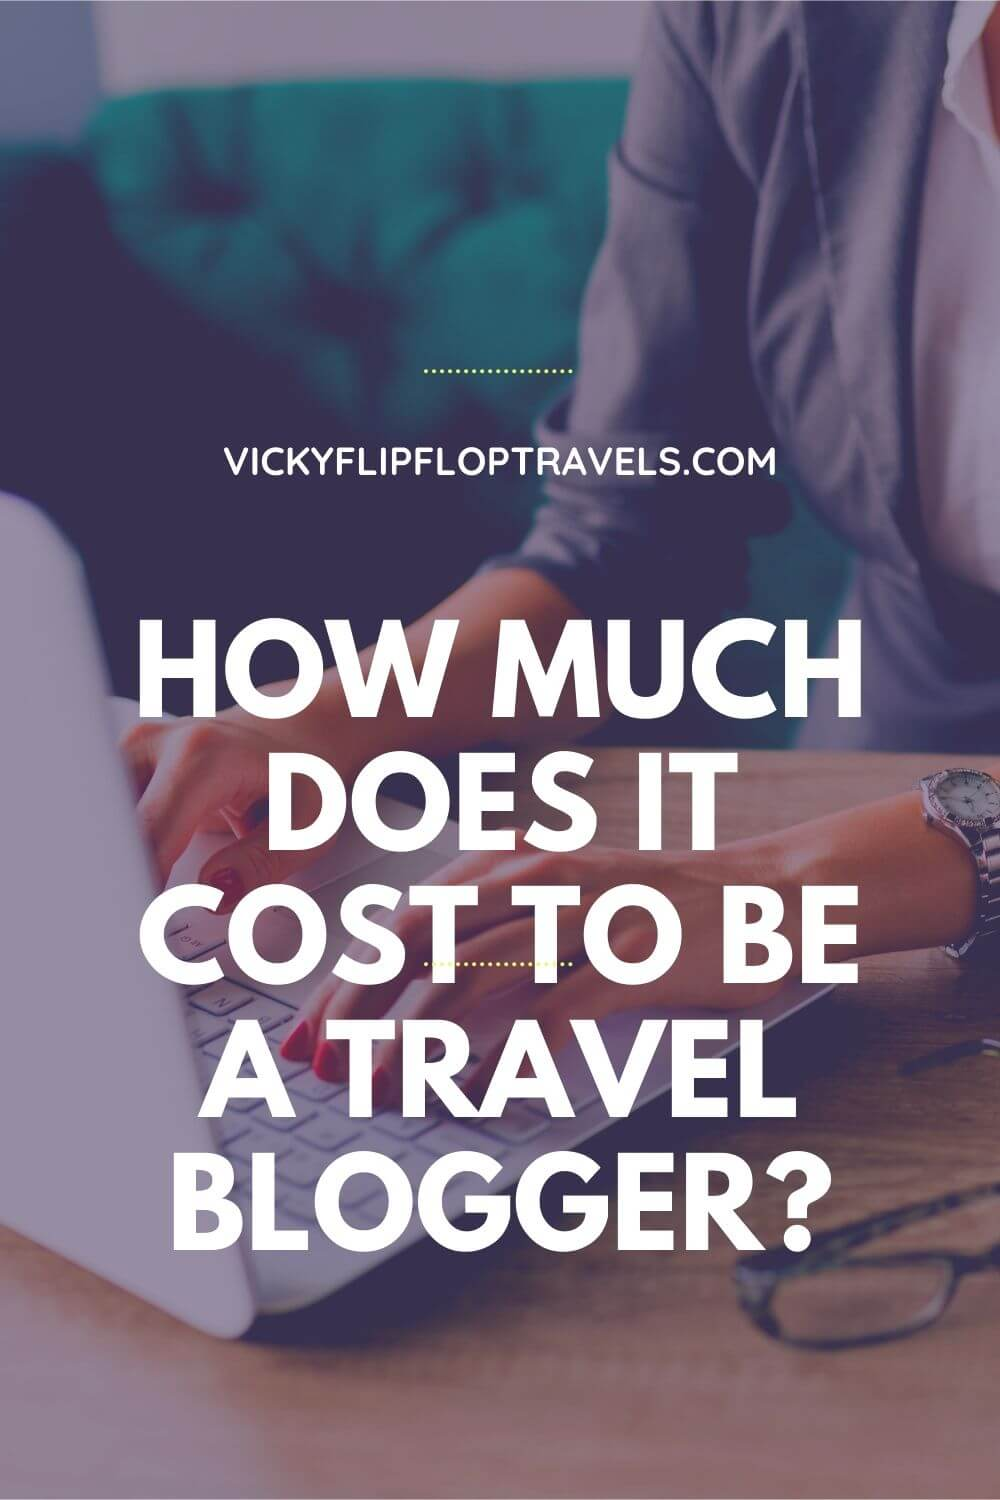 travel blogger costs